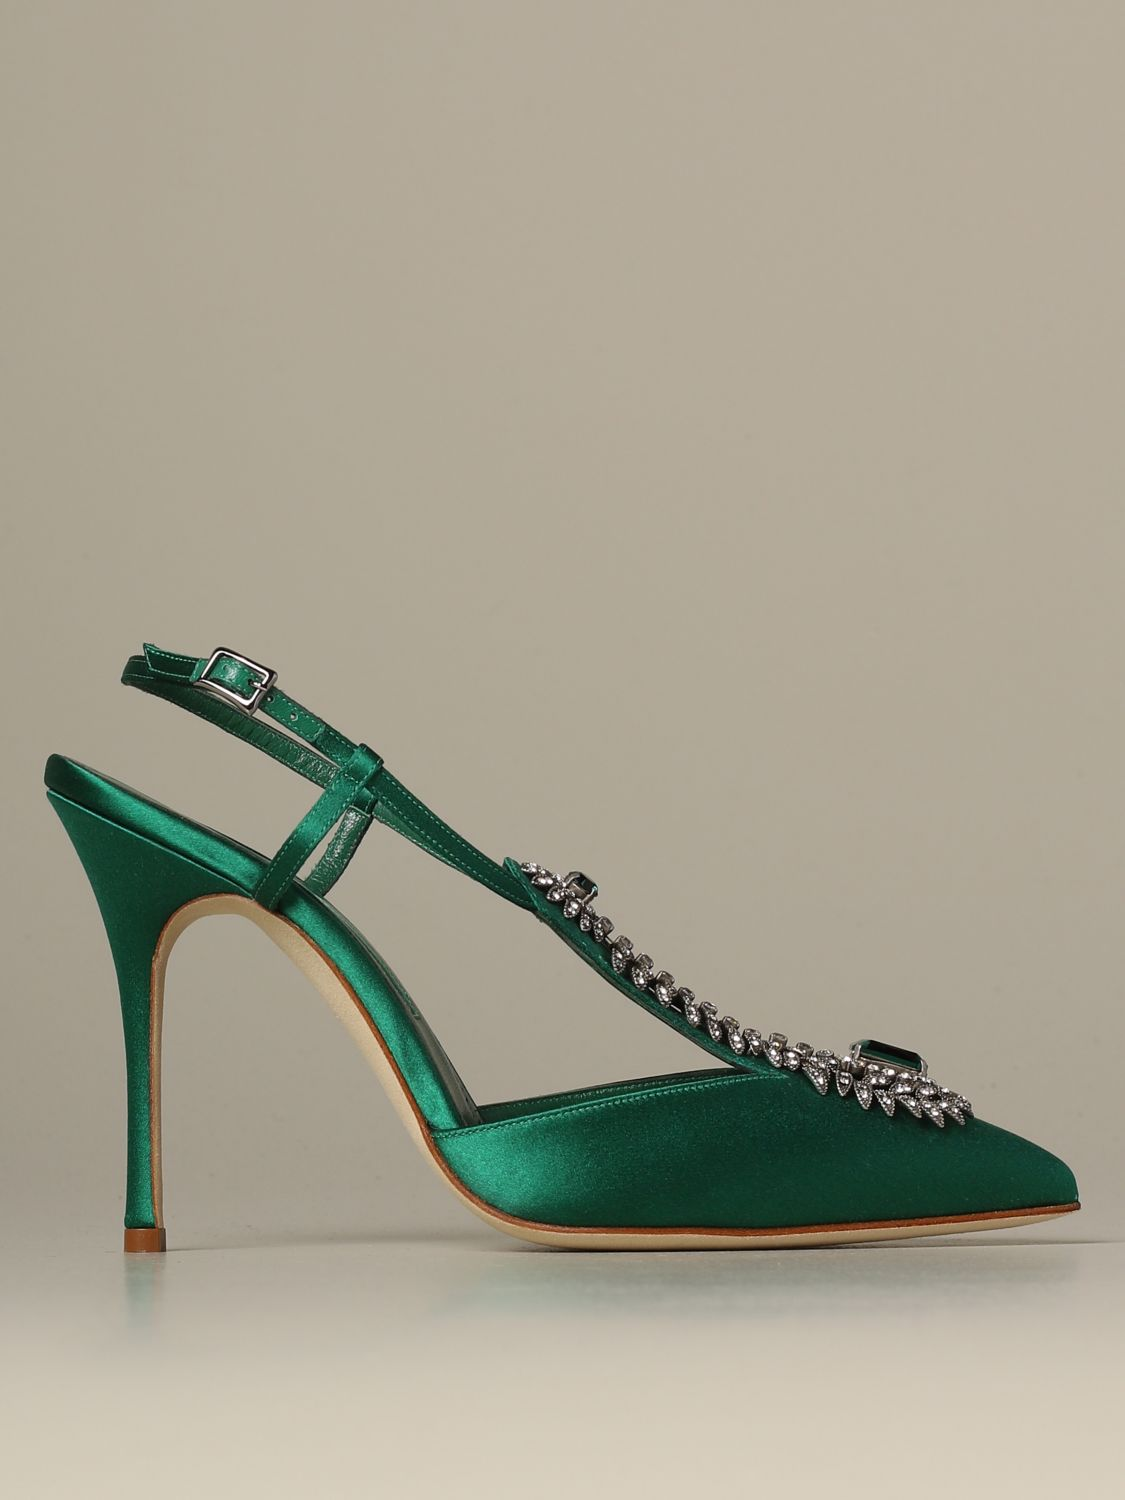 Pumps Manolo Blahnik: Shoes women Manolo Blahnik emerald 1